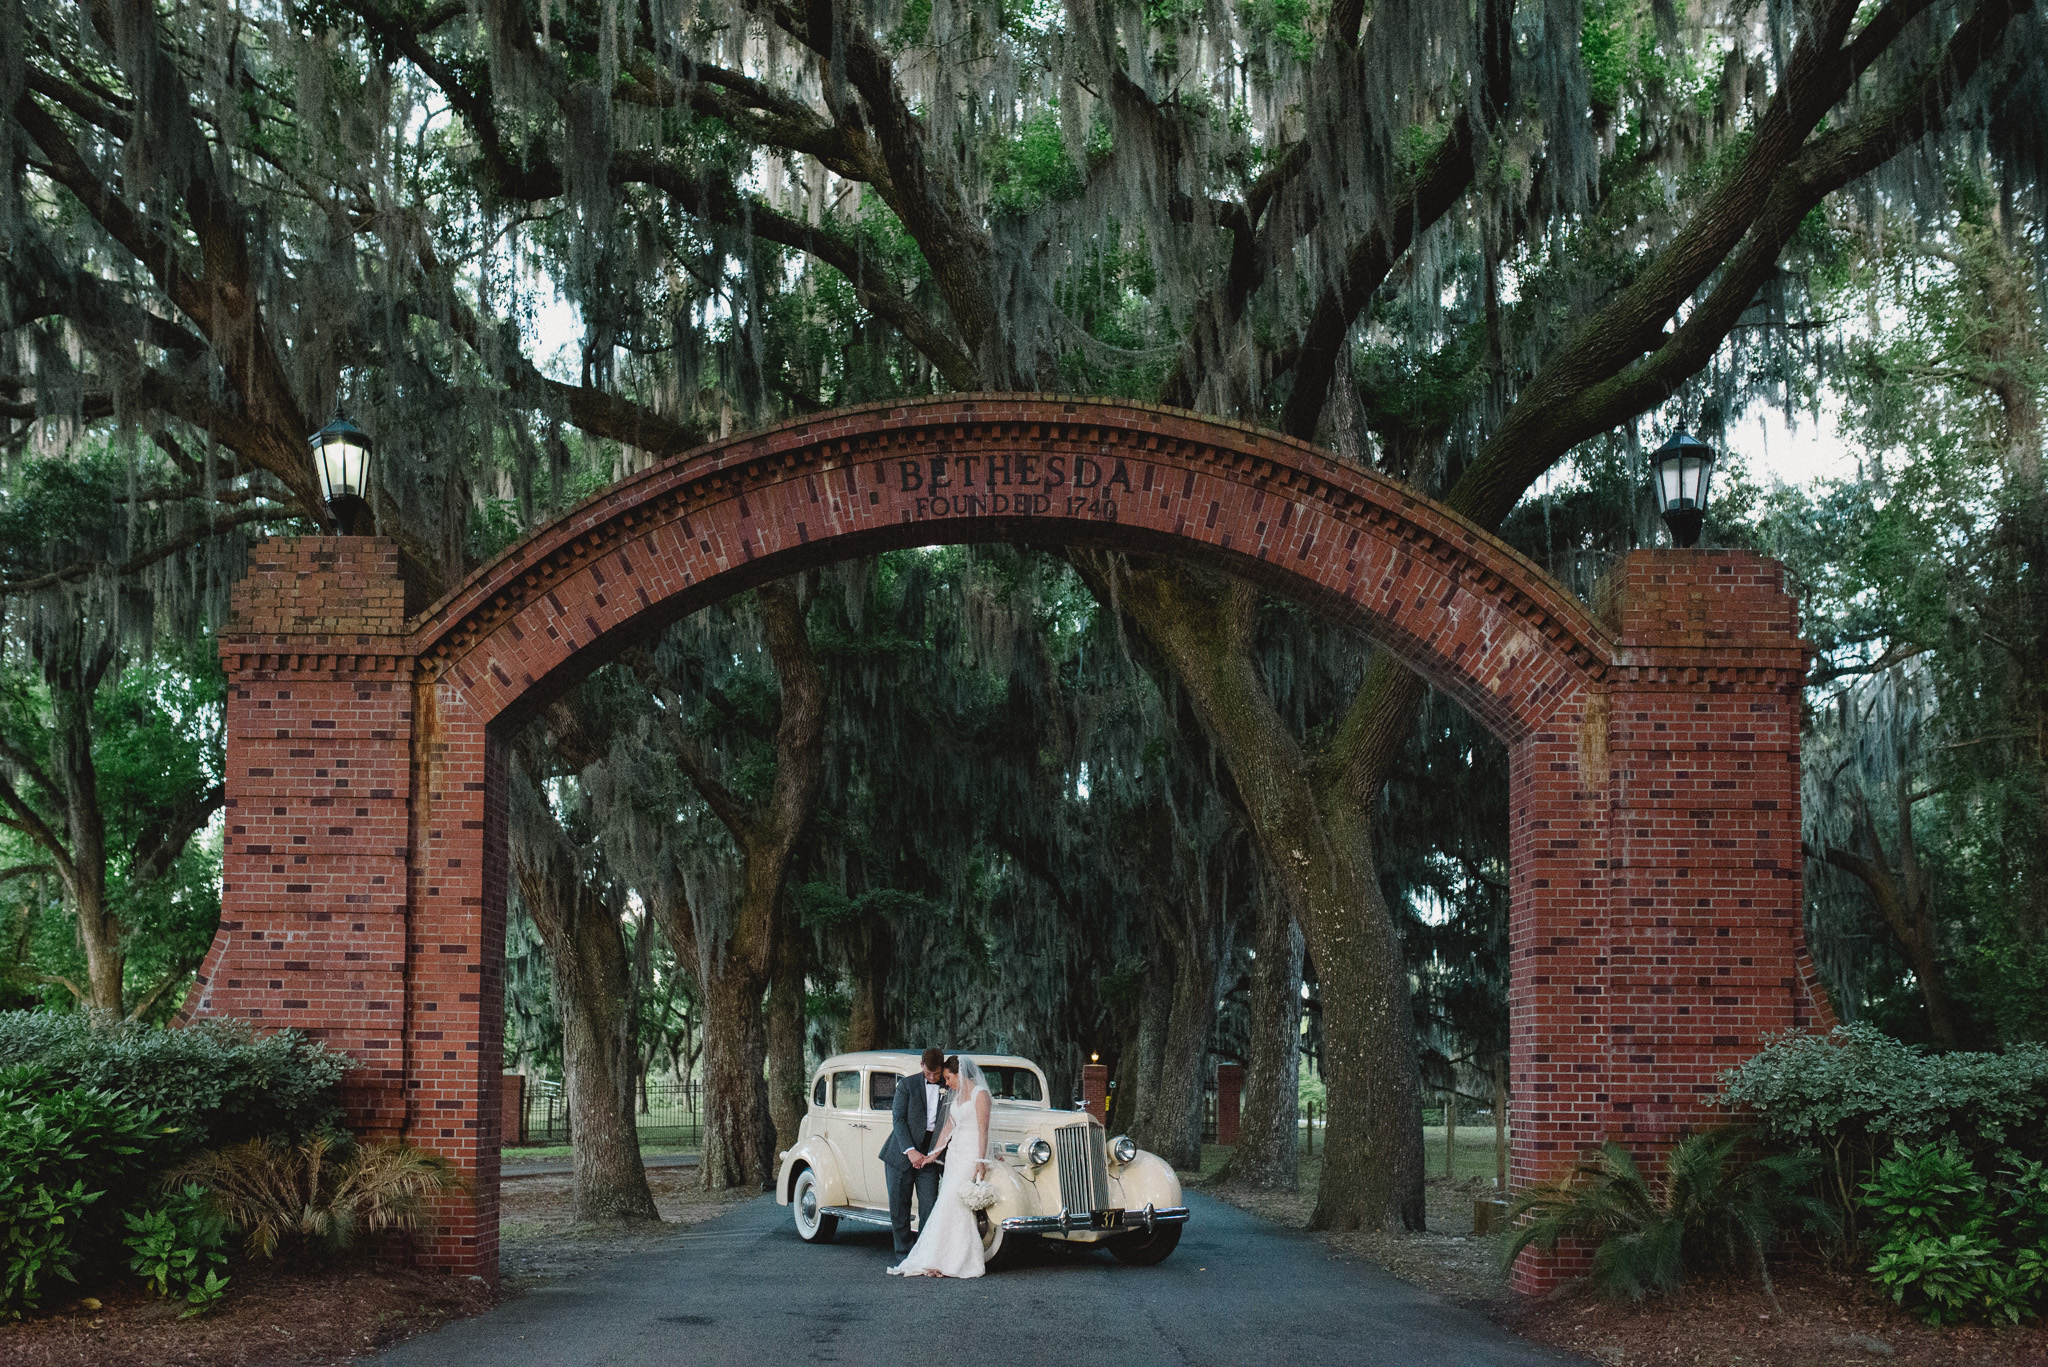 Savannah Wedding Photographer - Bride and Groom at Bethesda with classic car